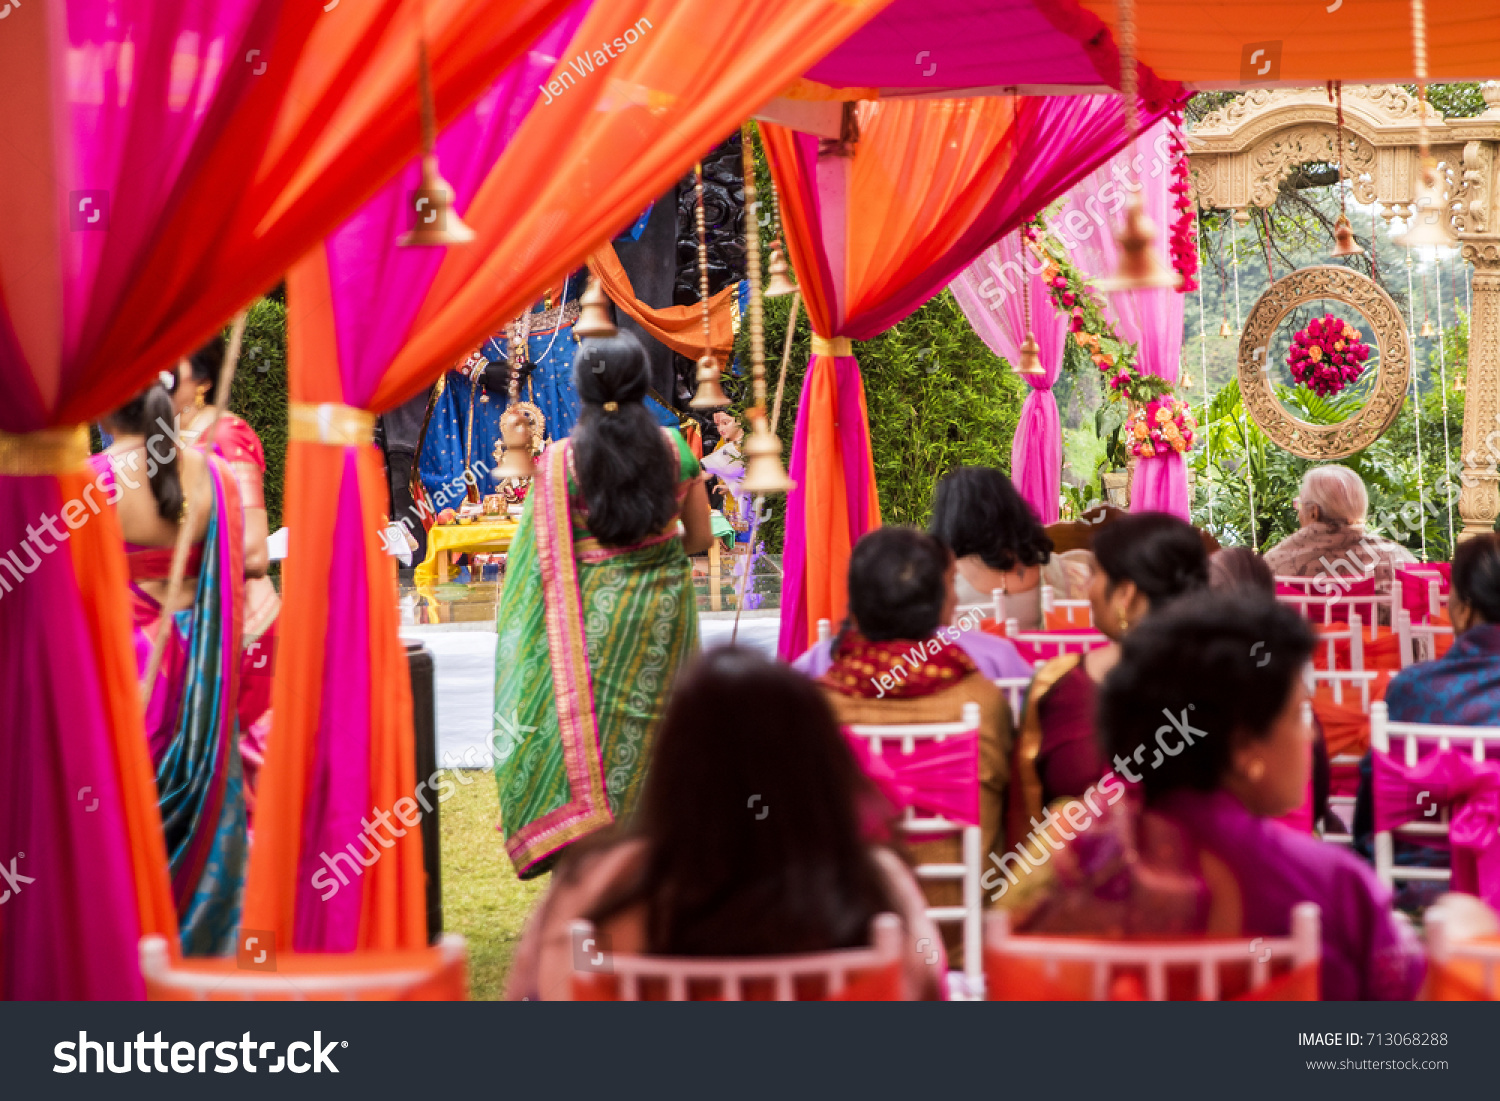 Traditional Hindu Wedding Arch And Rose Ball Viewed Through Vibrant Outdoor Setting For Indian Pre